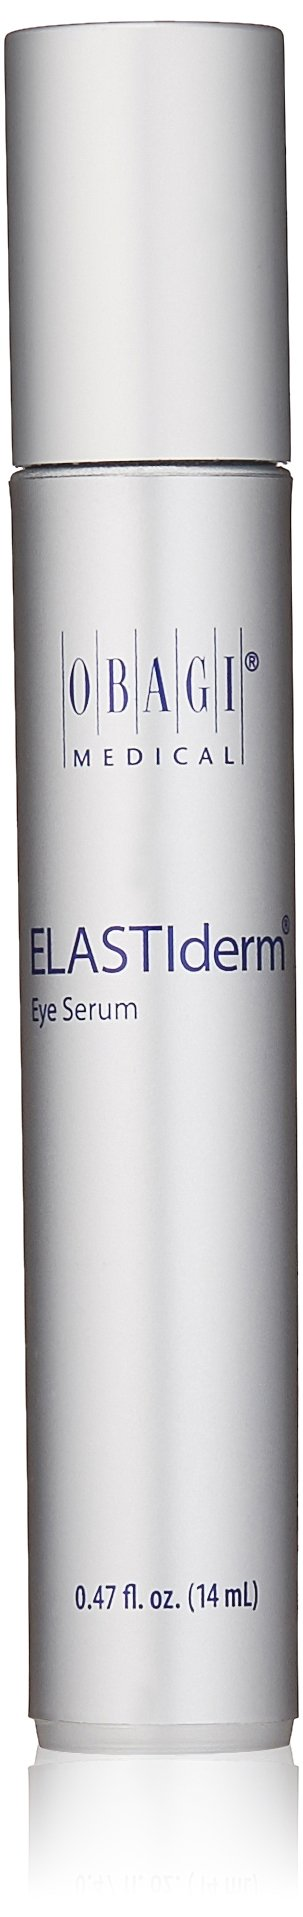 ELASTIderm Eye Serum,  0.47 Ounces